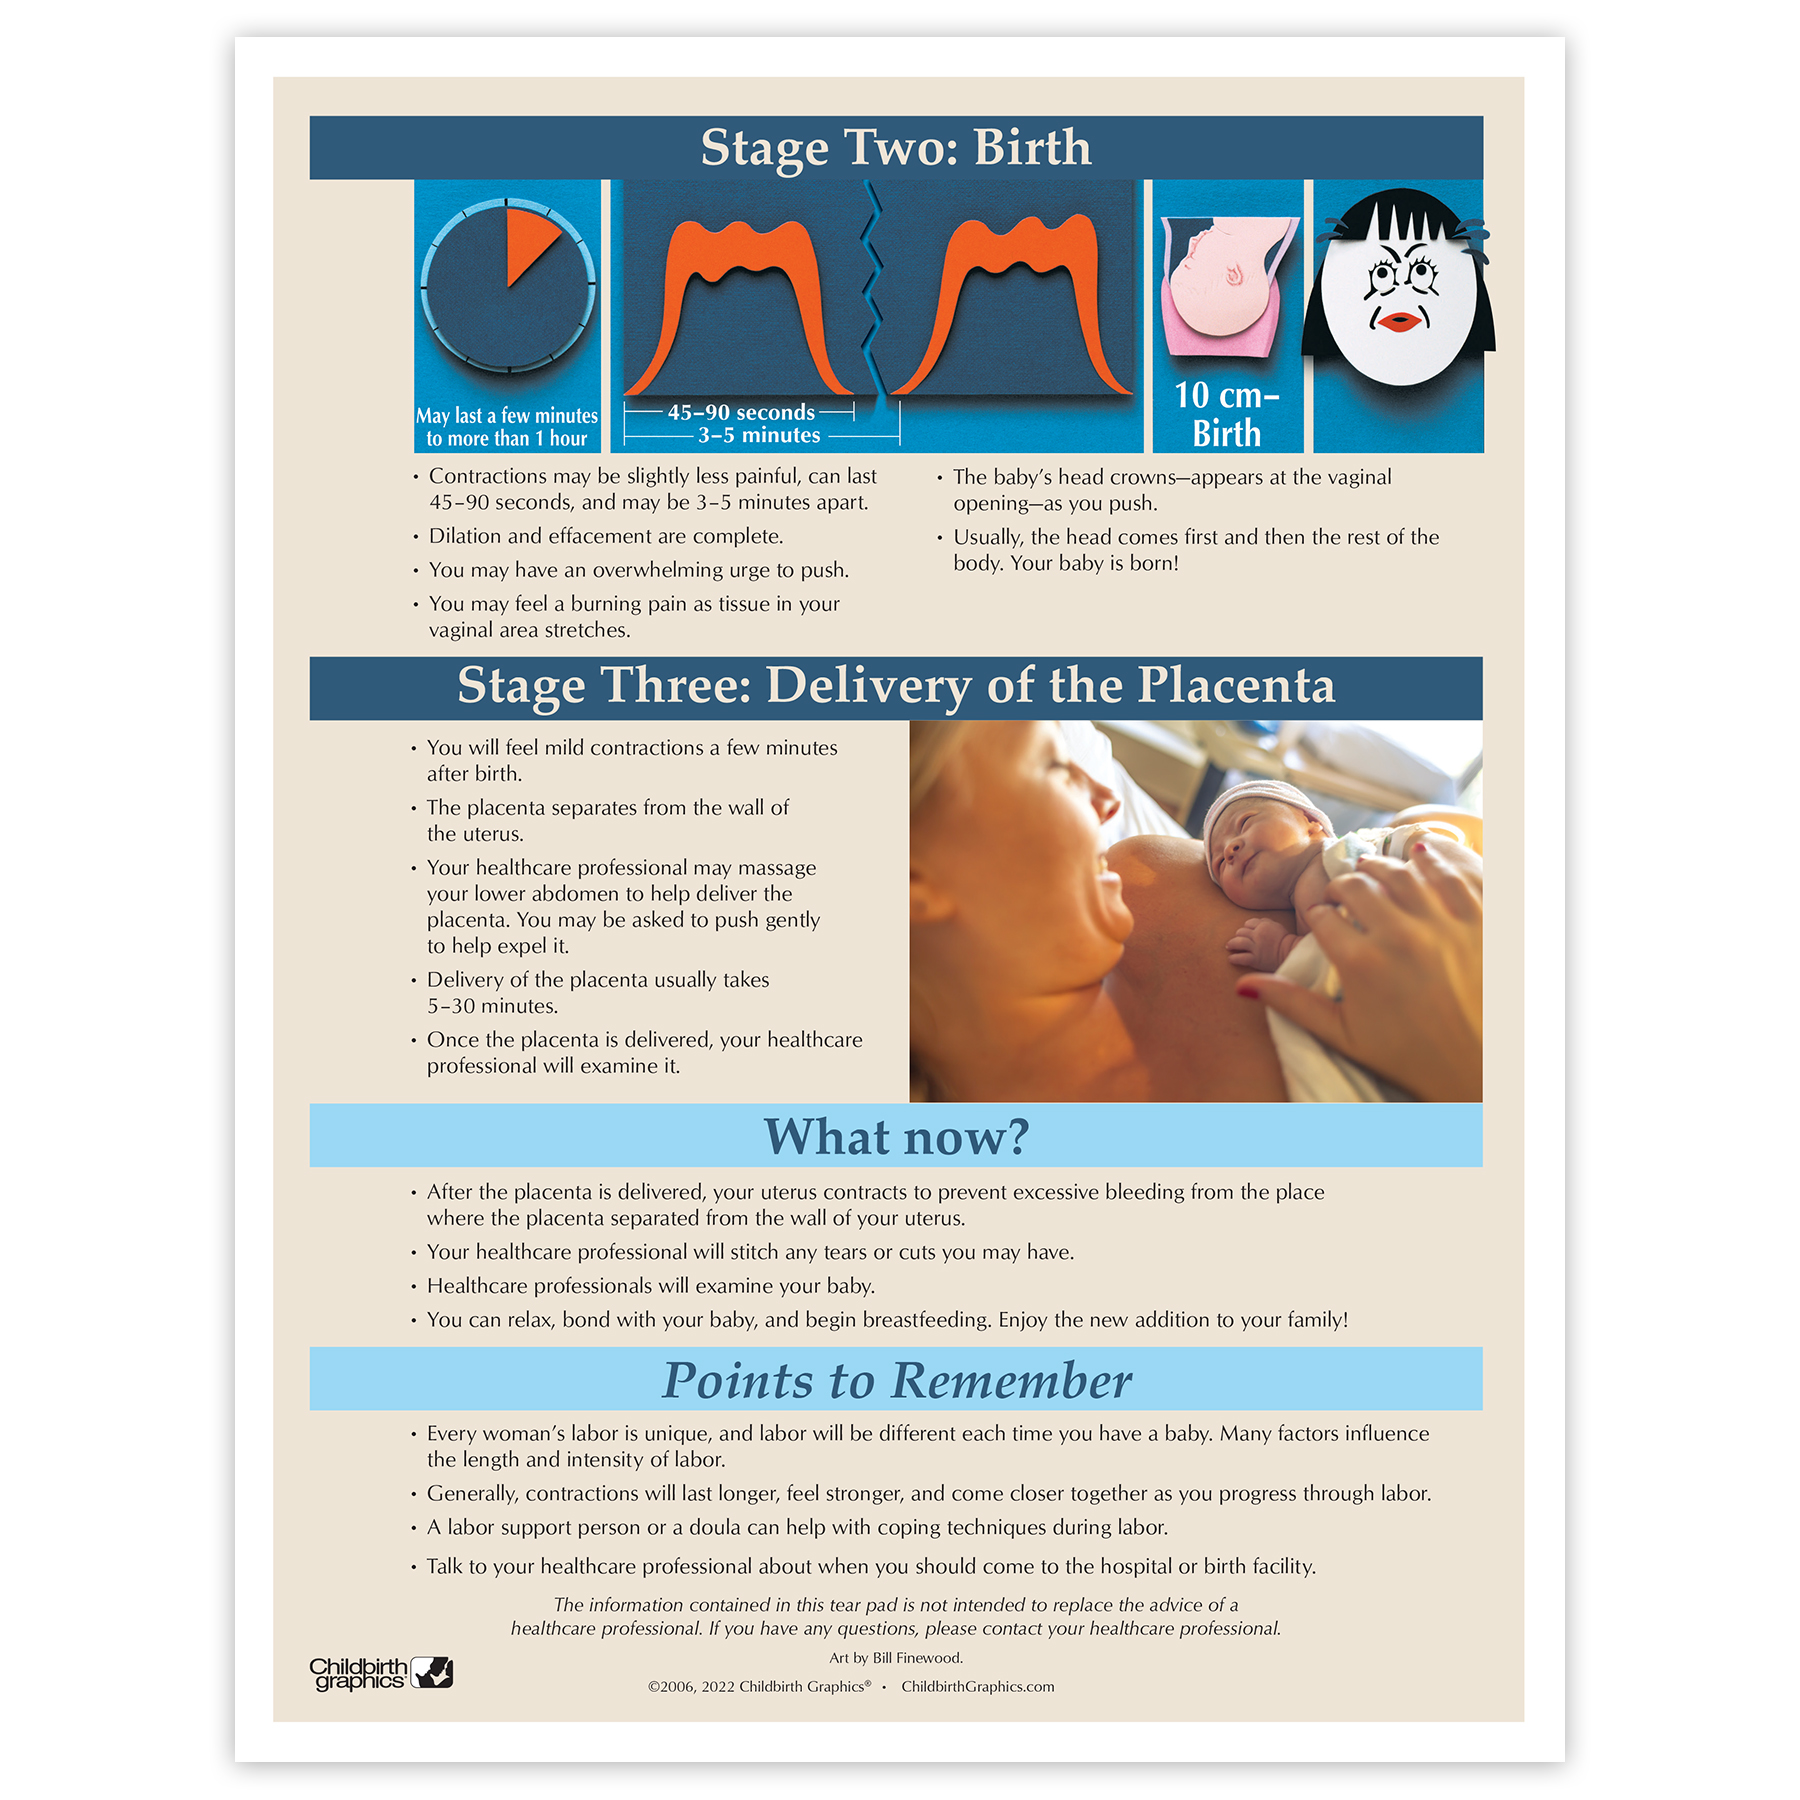 Stages of Labor full-color illustrated Tear Pad front, stages 2 & 3 of Labor time & contraction duration, Childbirth Graphics 52736